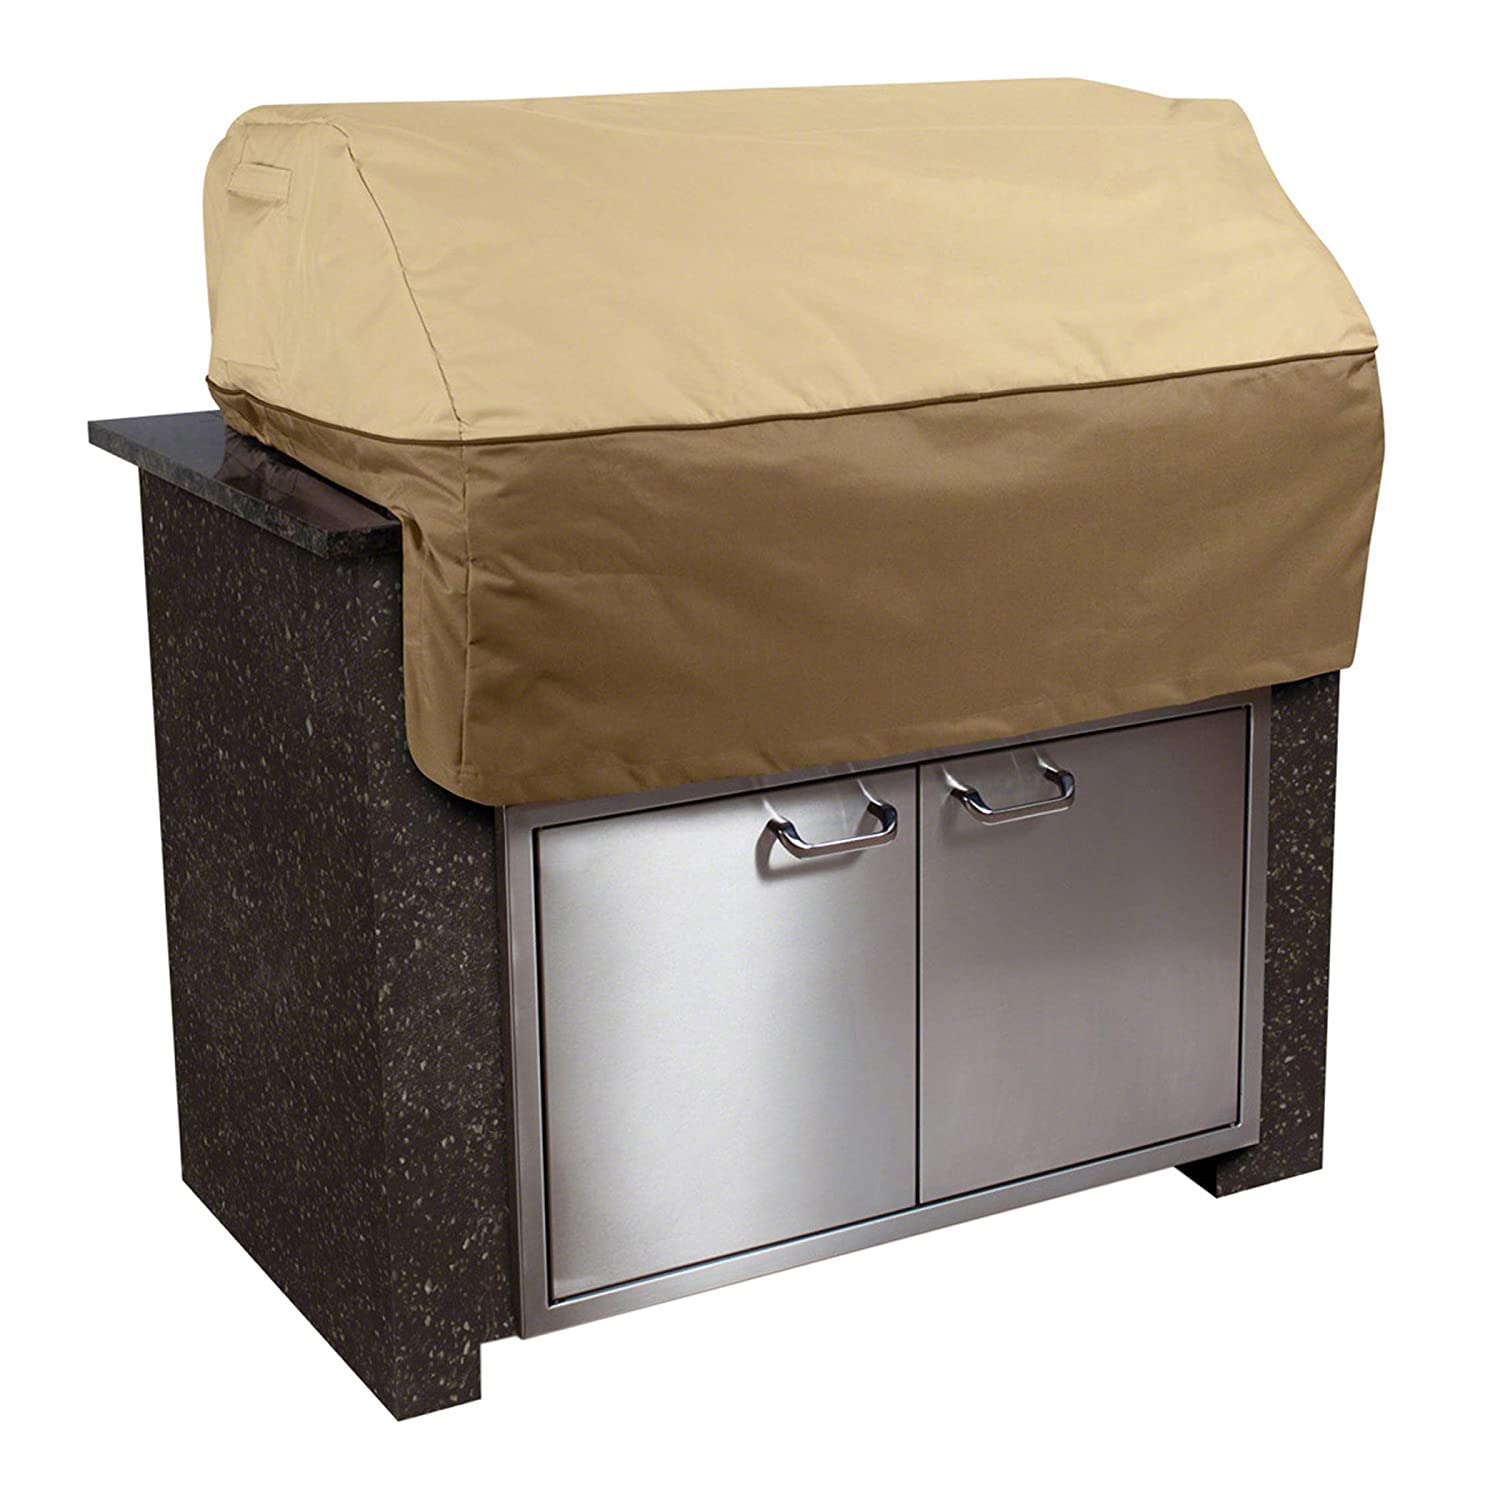 Classic Accessories 55-053-021501-00 Veranda Island Grill Top Cover, Small